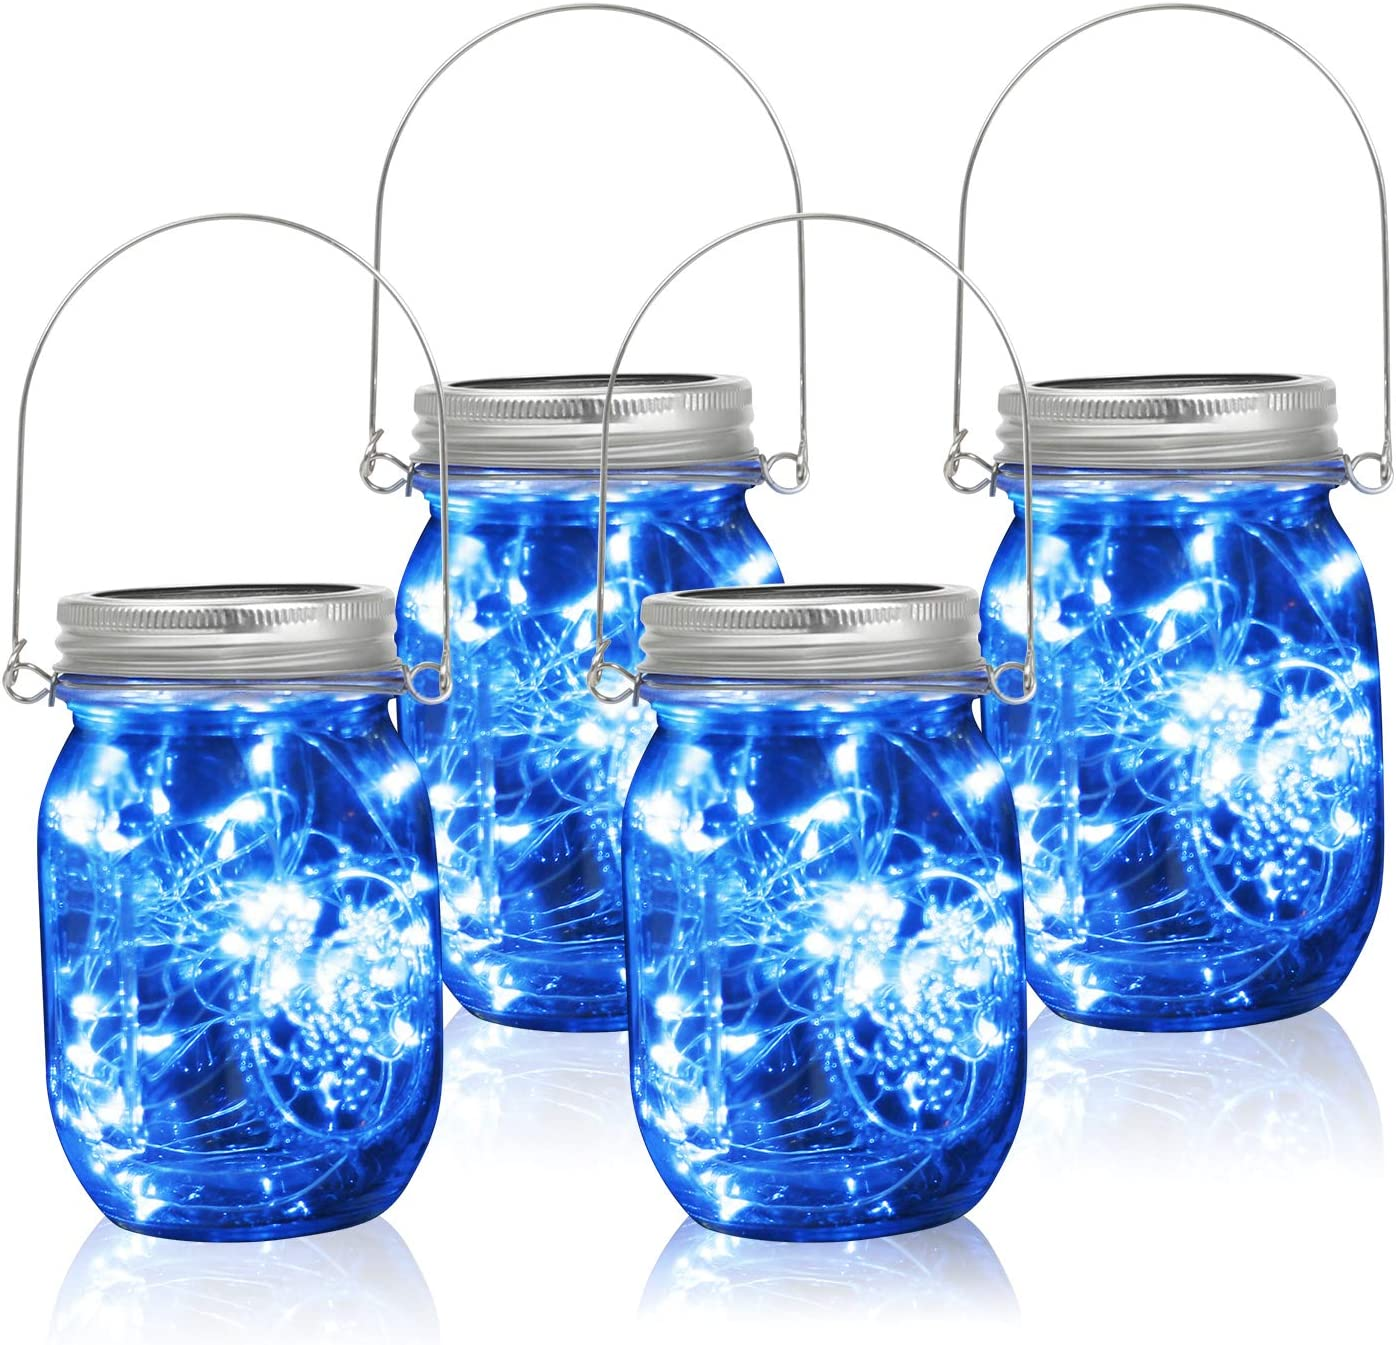 CMP Solar-Powered Mason Jar Lights, 4-Pack 30 LED String Glass Jar Hanging Light Lantern Lamp for Home Outdoor Garden Patio Path Table Party Wedding Christmas Holiday Decor, Blue